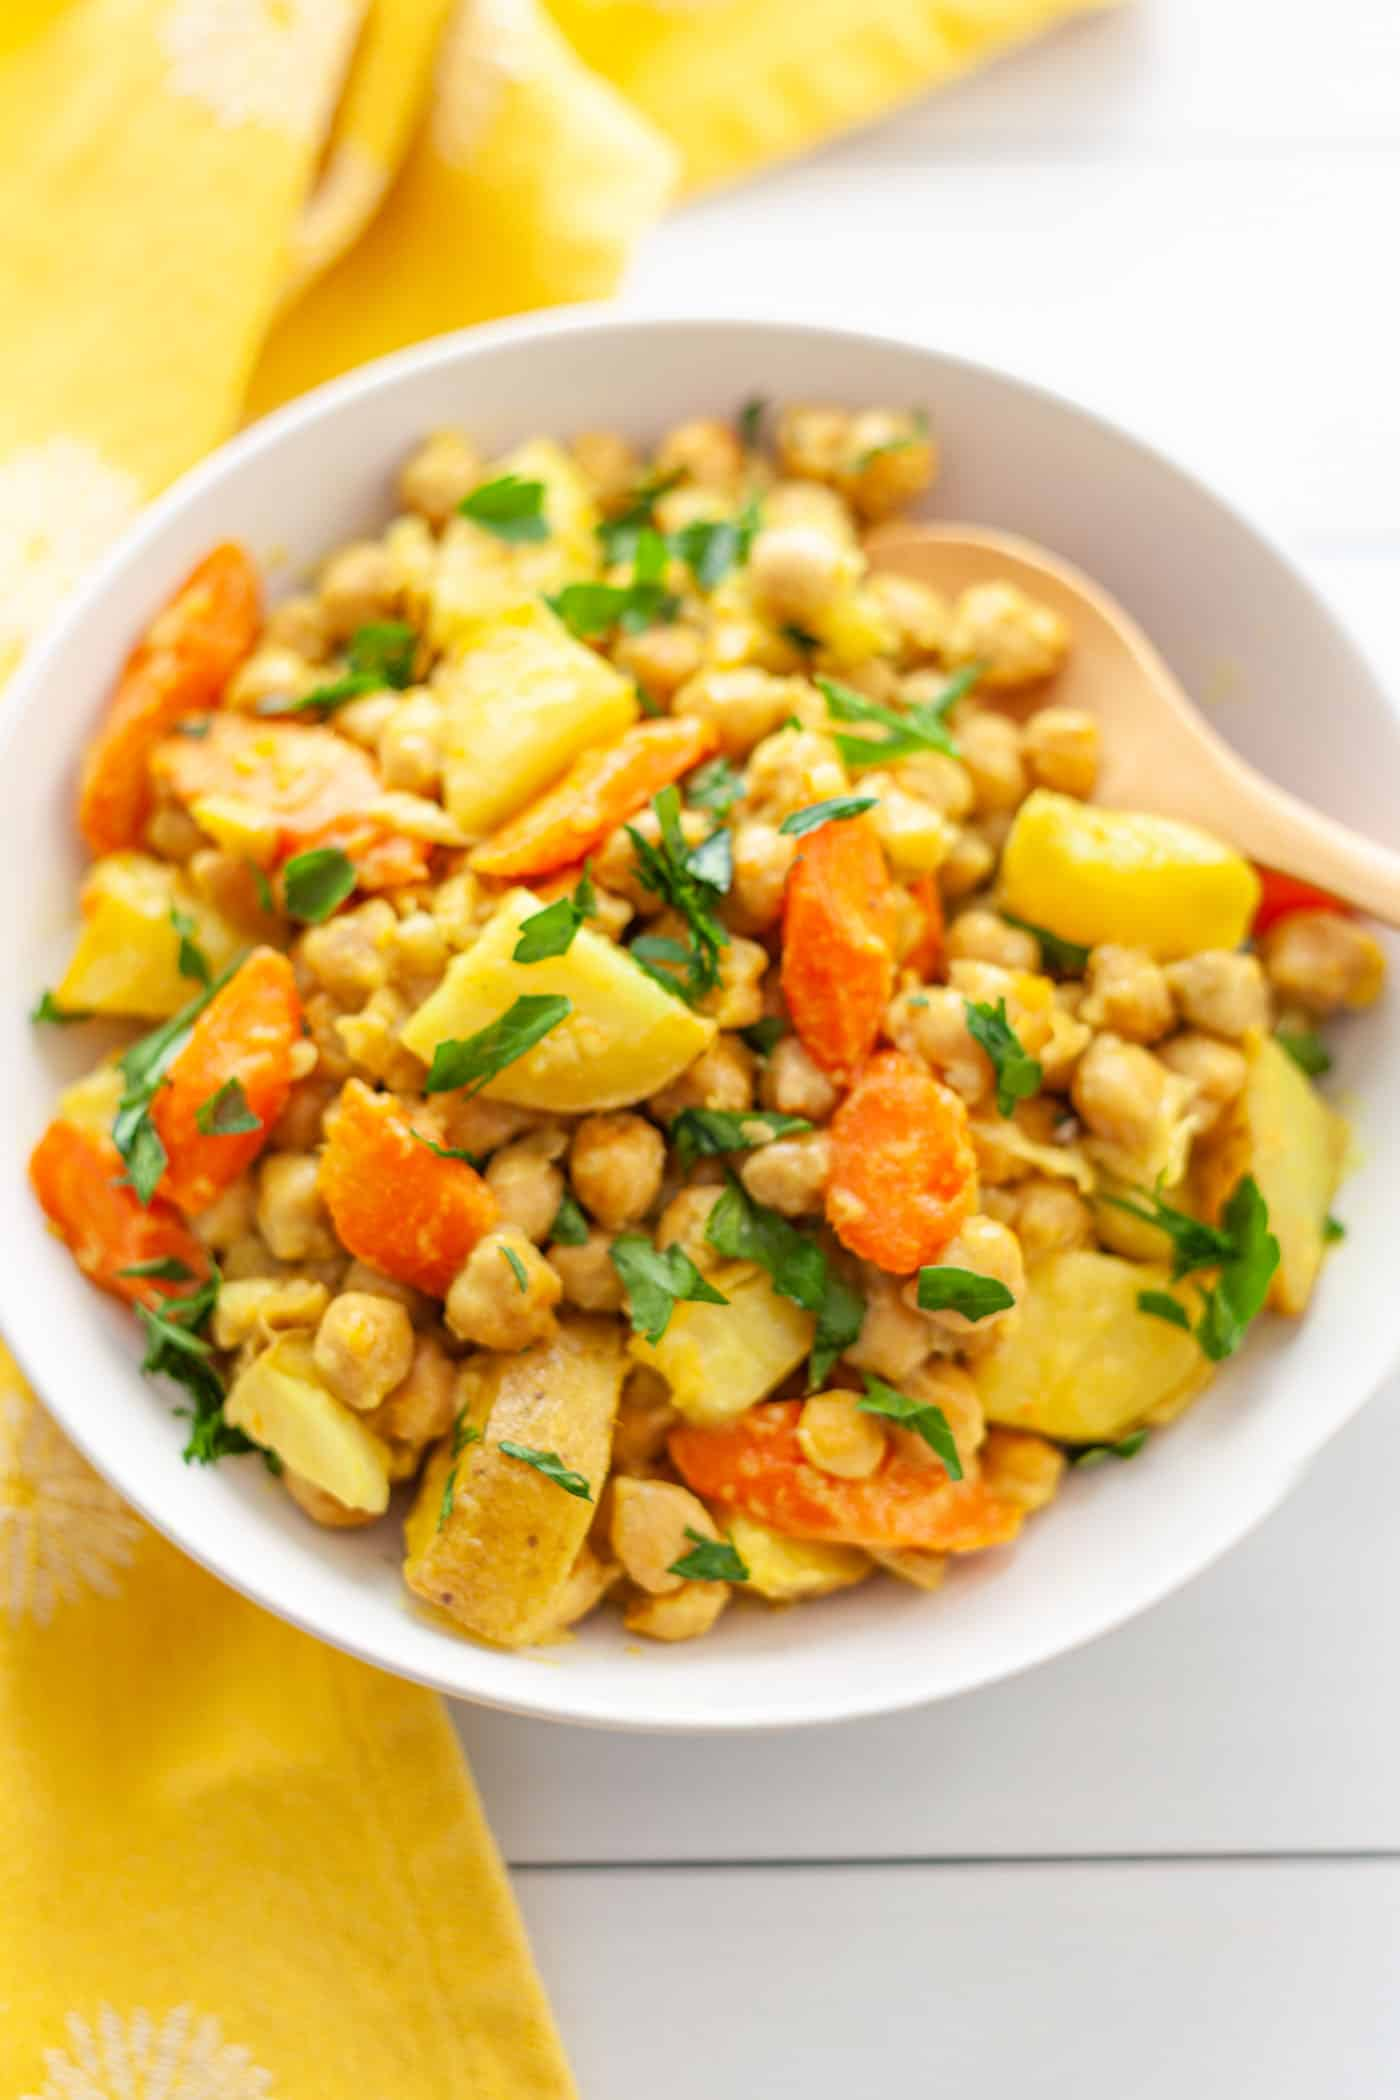 A bowl of chickpea stew with potatoes and carrots